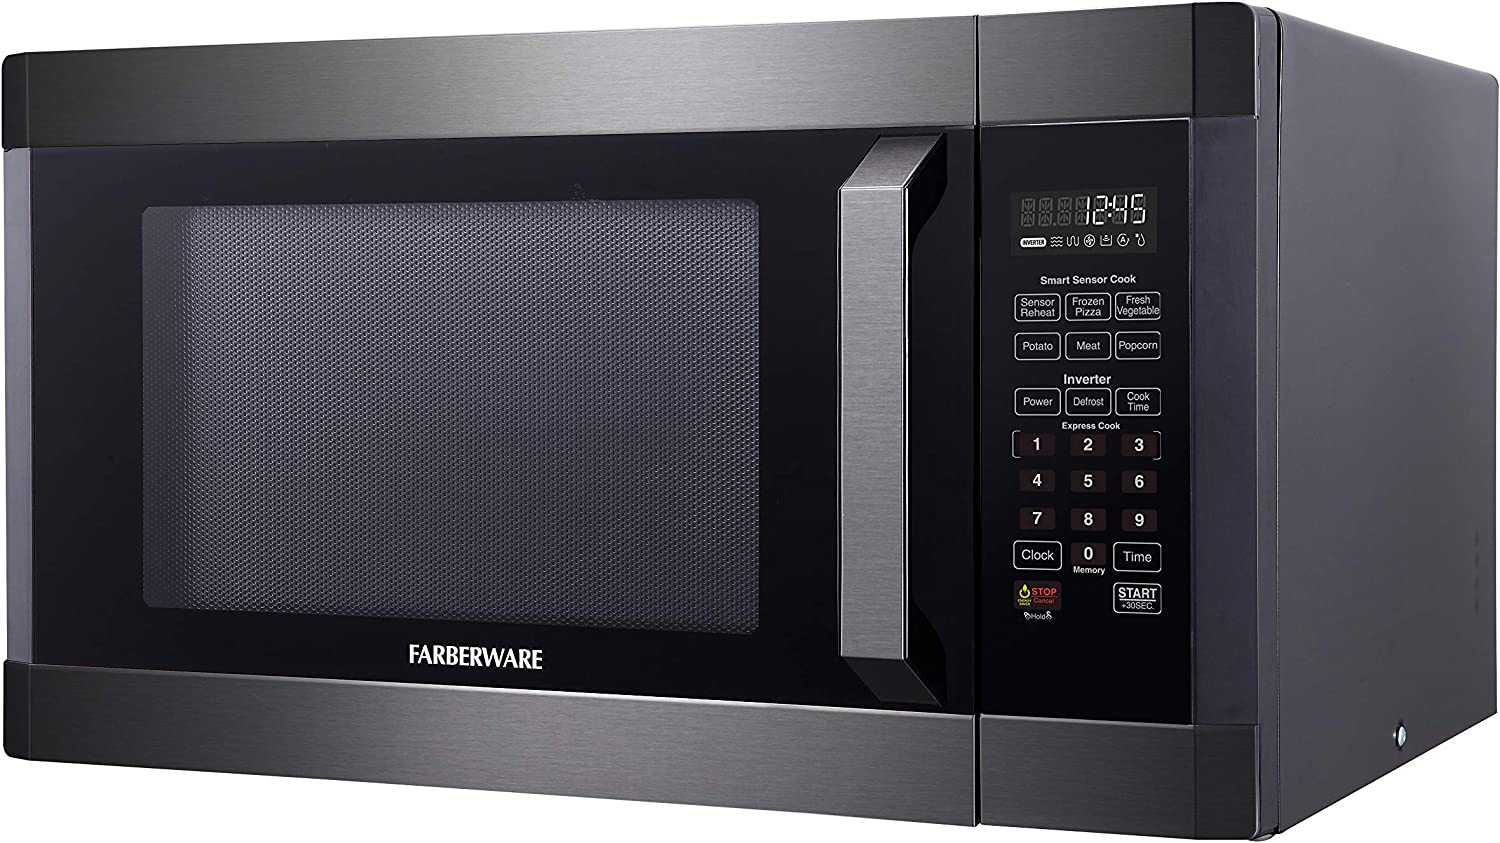 Black Stainless Steel 1300-Watt Microwave Oven with Smart Sensor Cooking Inverter Technology ECO Mode and LED Lighting Ft Farberware Black FMO16AHTBSA 1.6 Cu